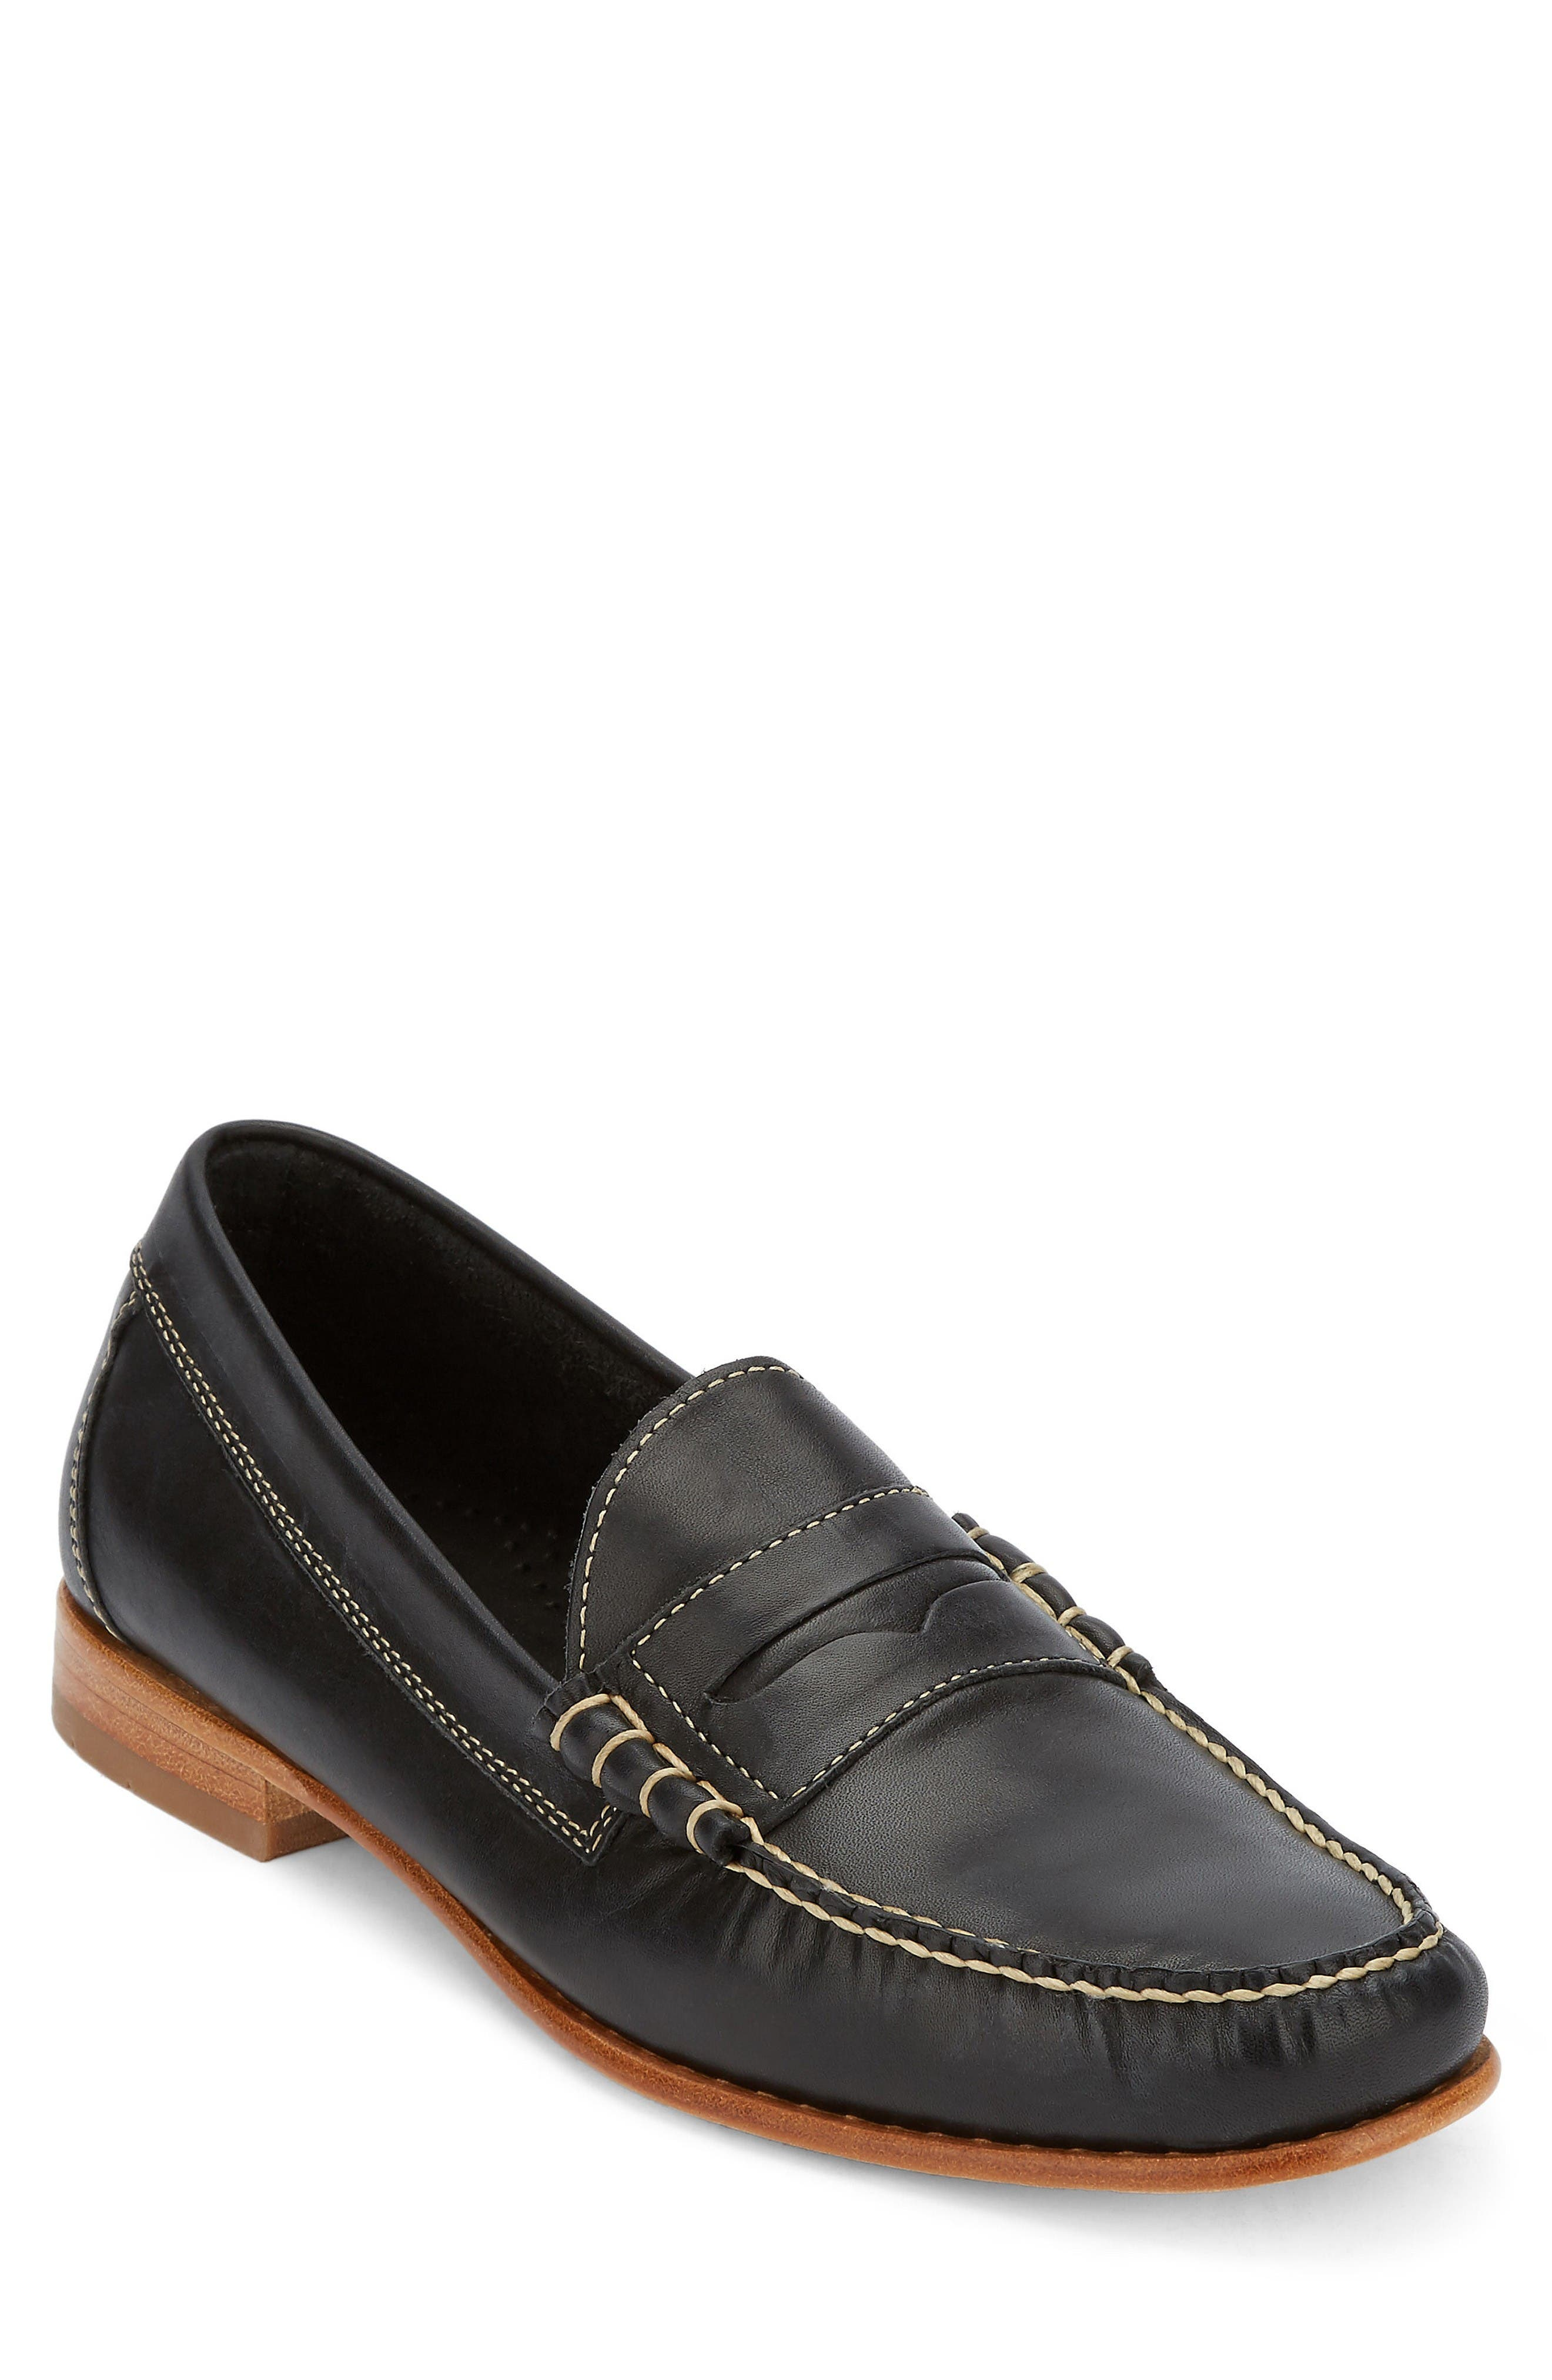 Weejuns Lambert Penny Loafer,                         Main,                         color, Black